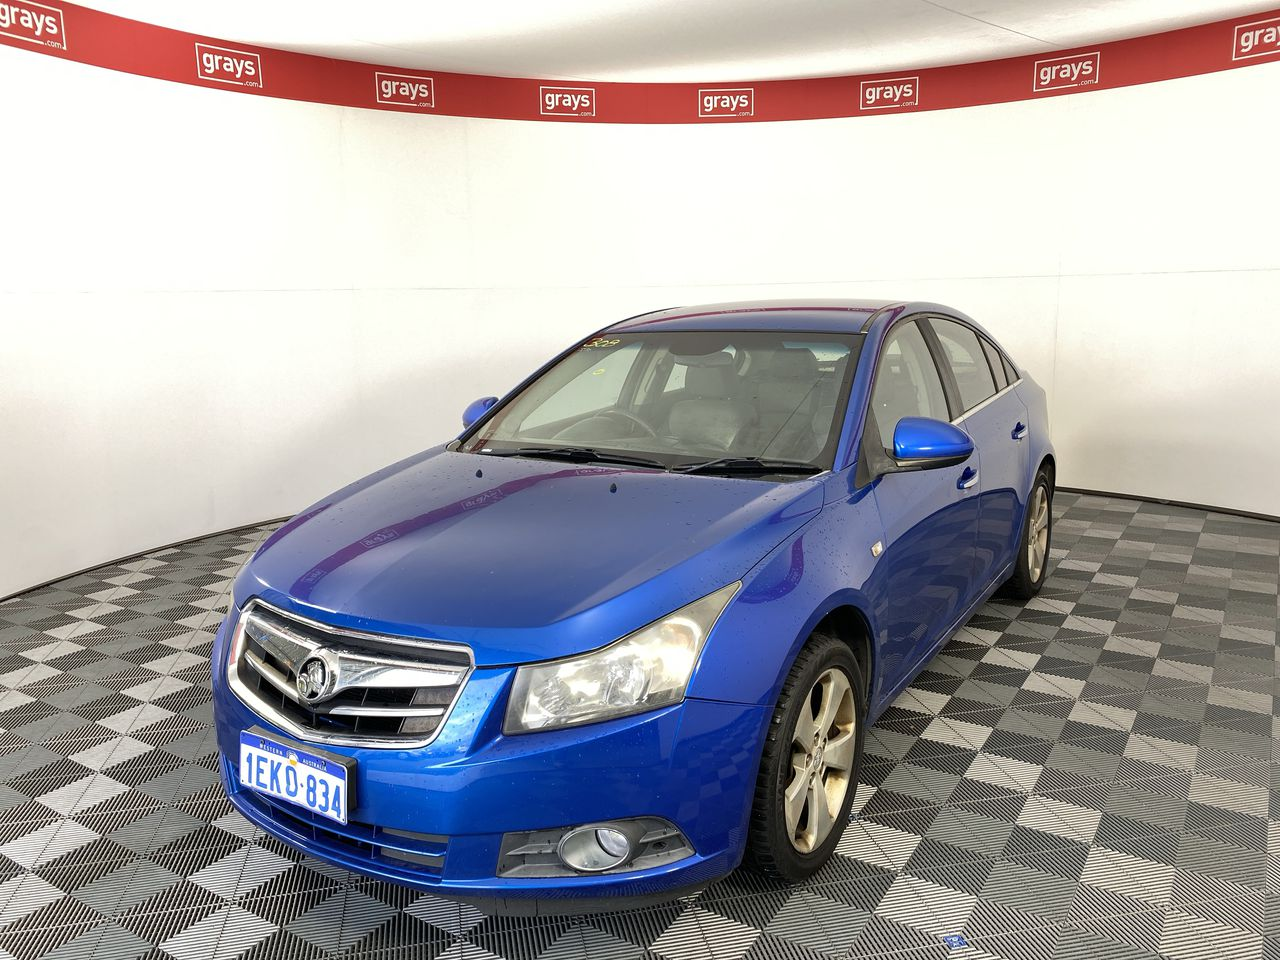 2009 Holden Cruze CDX JG Manual Sedan